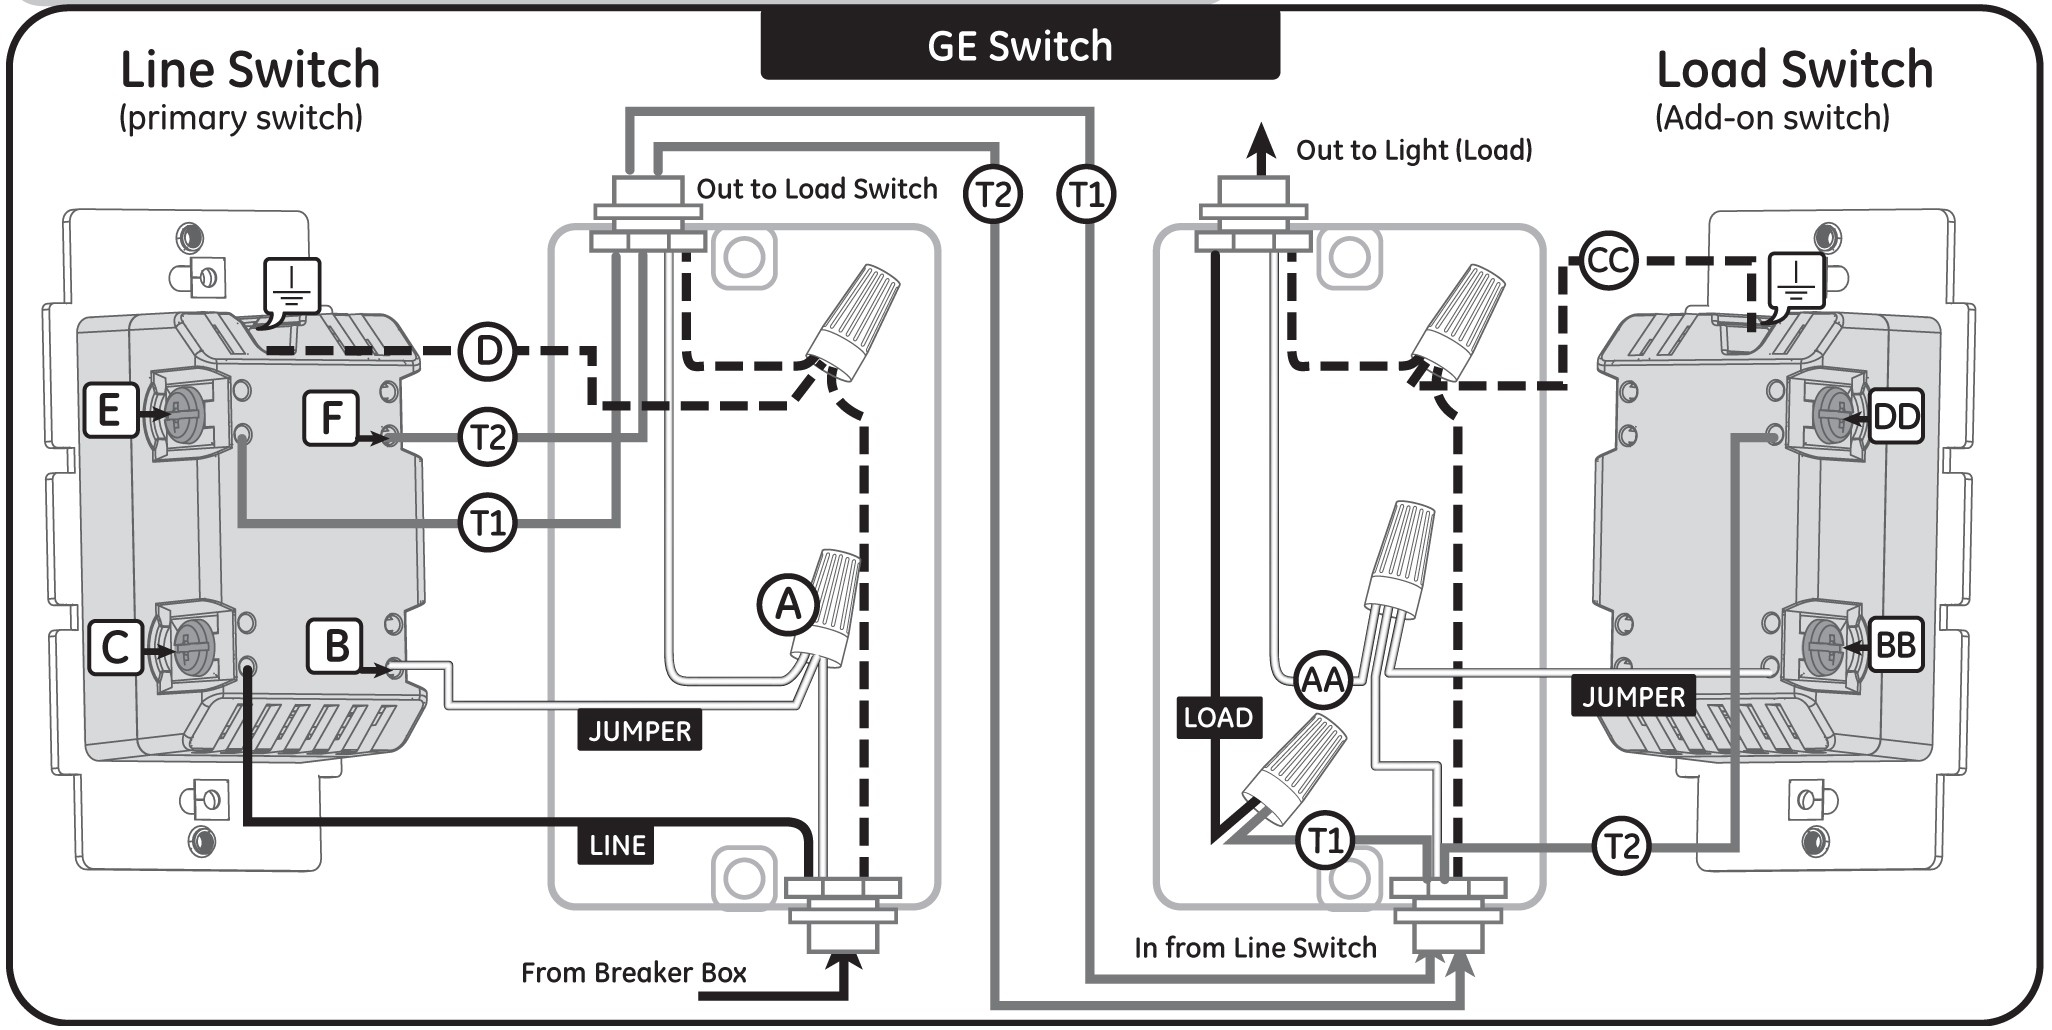 cooper dimmer switch wiring diagram auto electrical. Black Bedroom Furniture Sets. Home Design Ideas